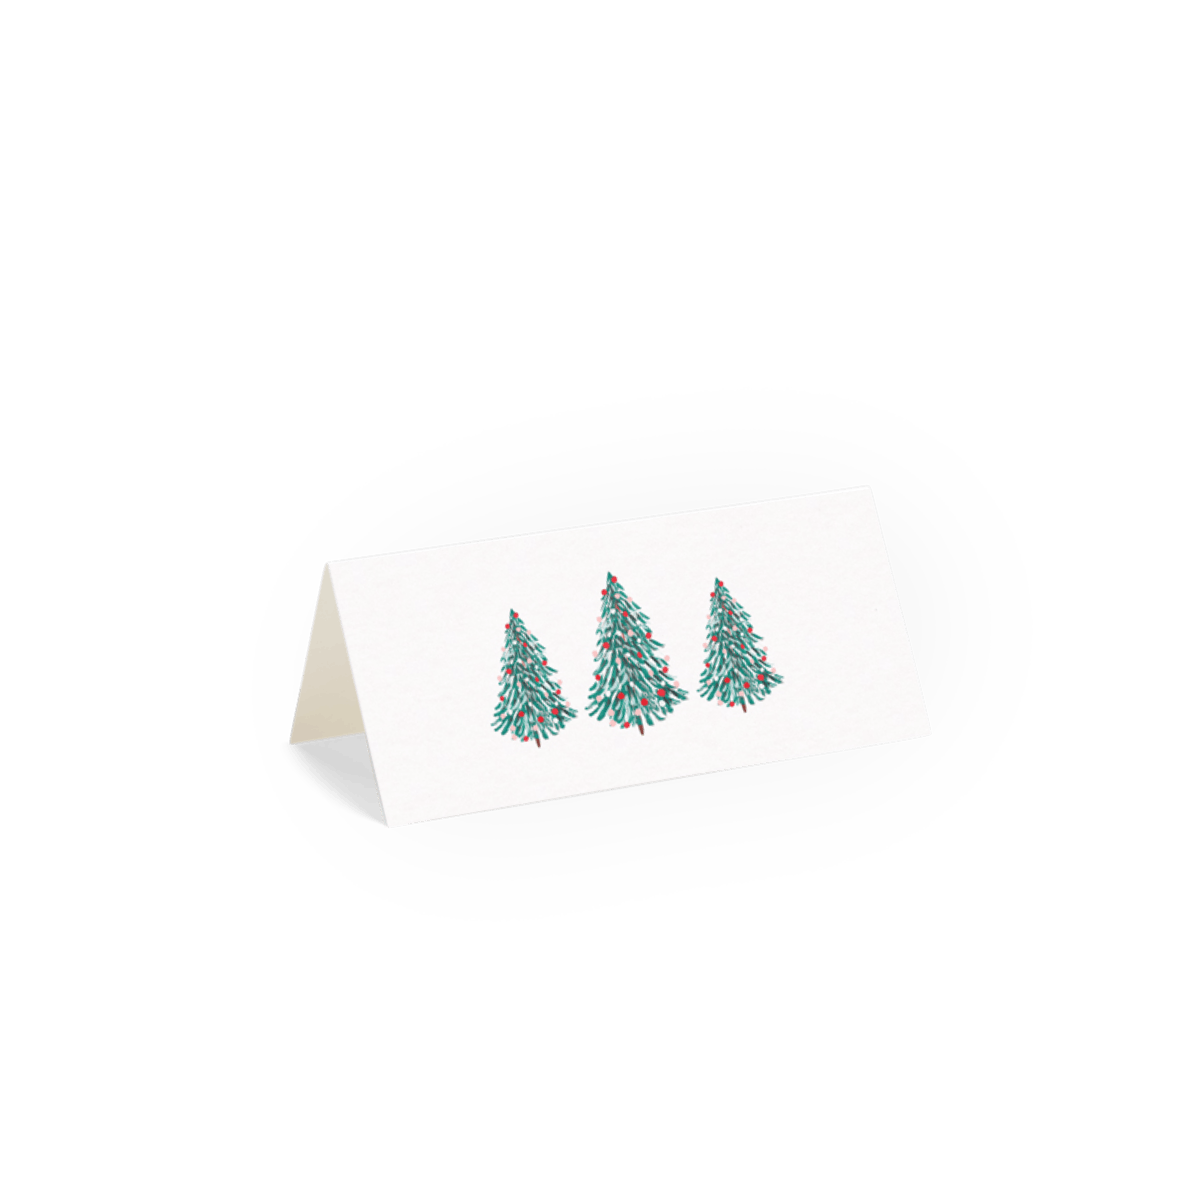 Https%3a%2f%2fwww.papier.com%2fproduct image%2f26105%2f15%2fmerry christmas tree 6533 back 1500985014.png?ixlib=rb 1.1